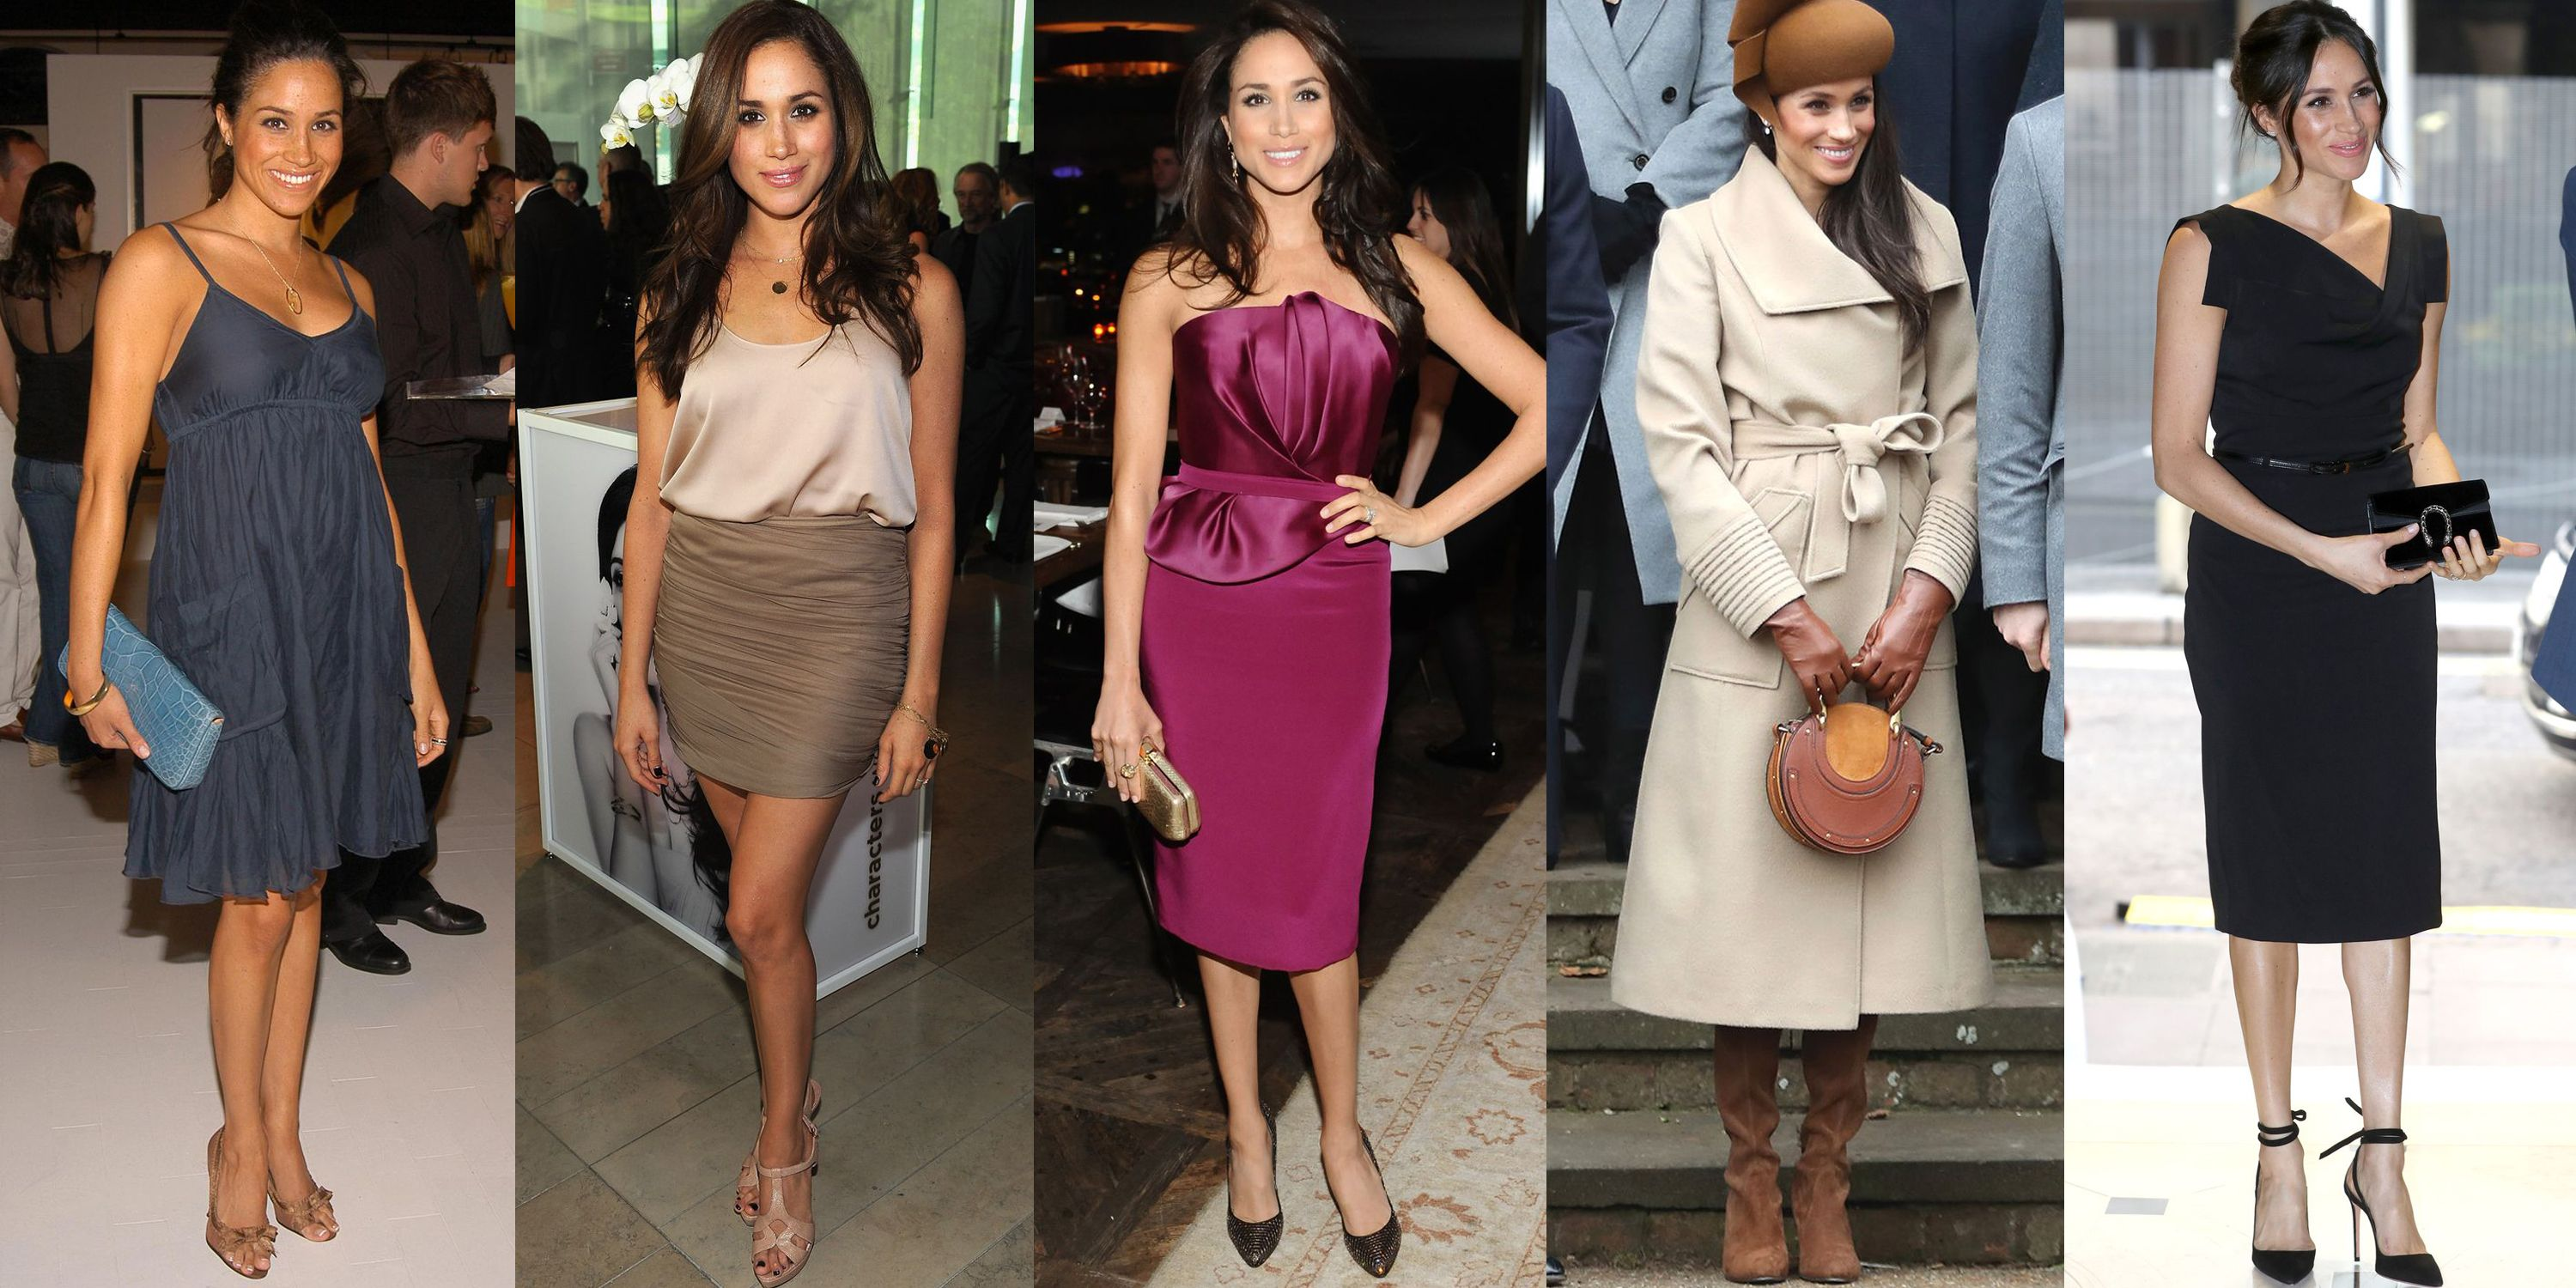 Meghan Markle's Best Style Moments Through the Years